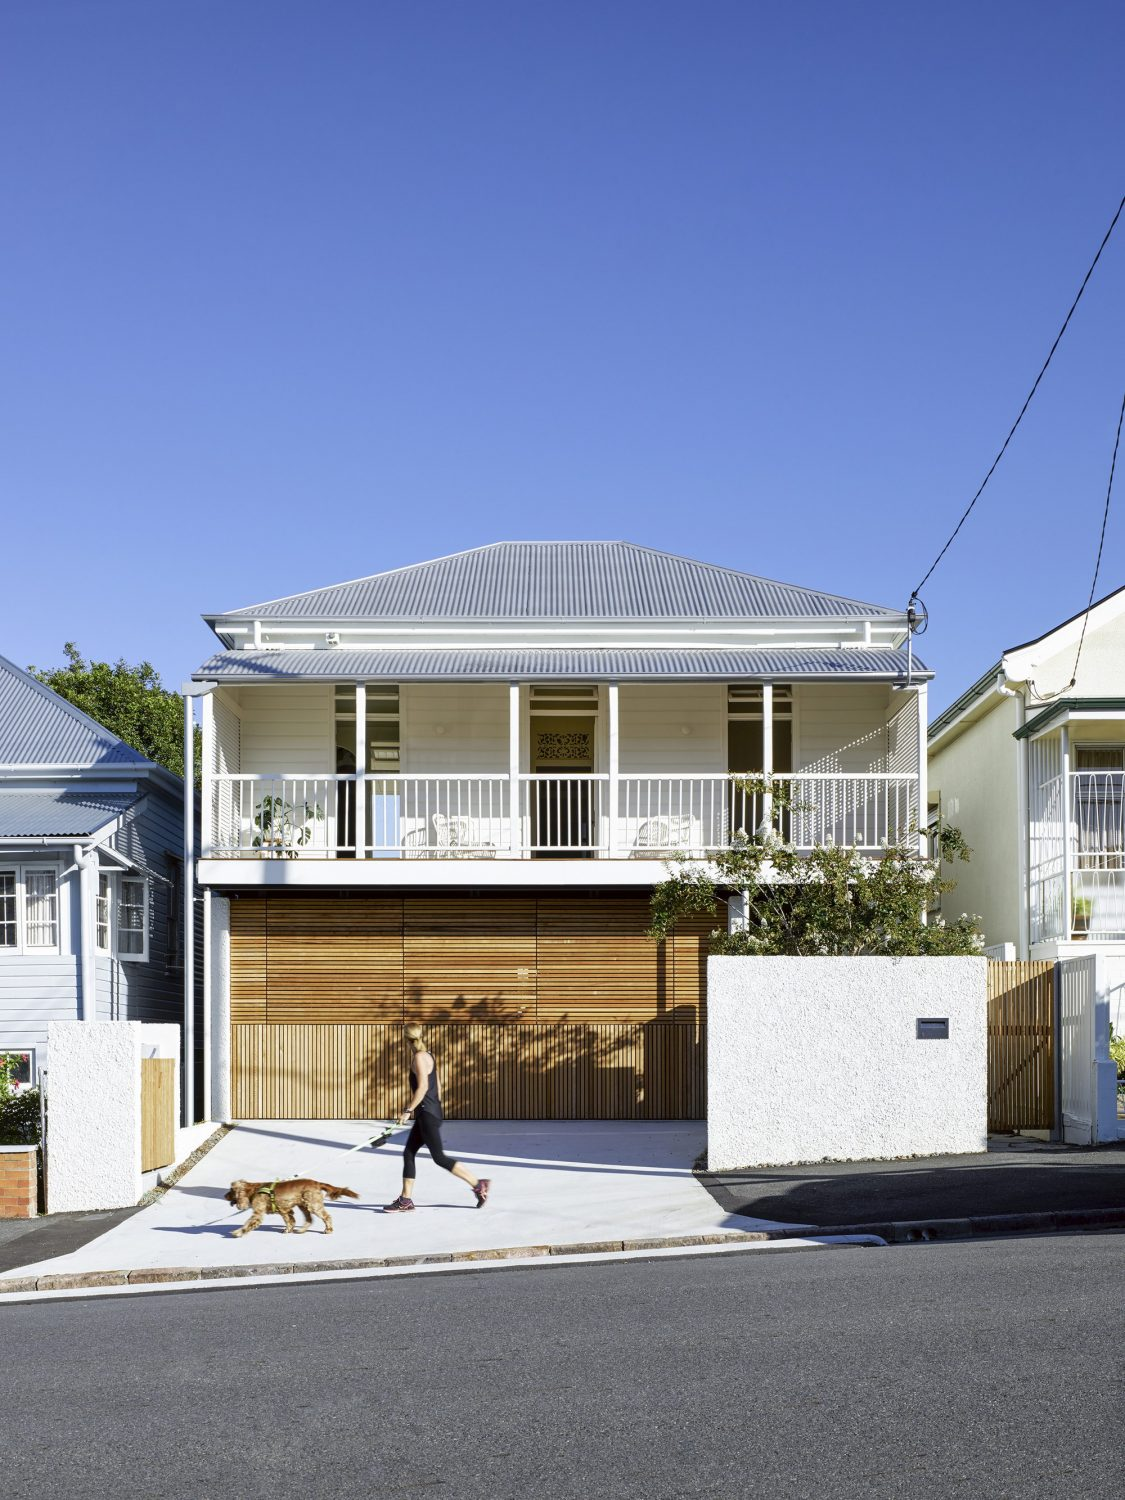 Gibbon Street by Cavill Architects